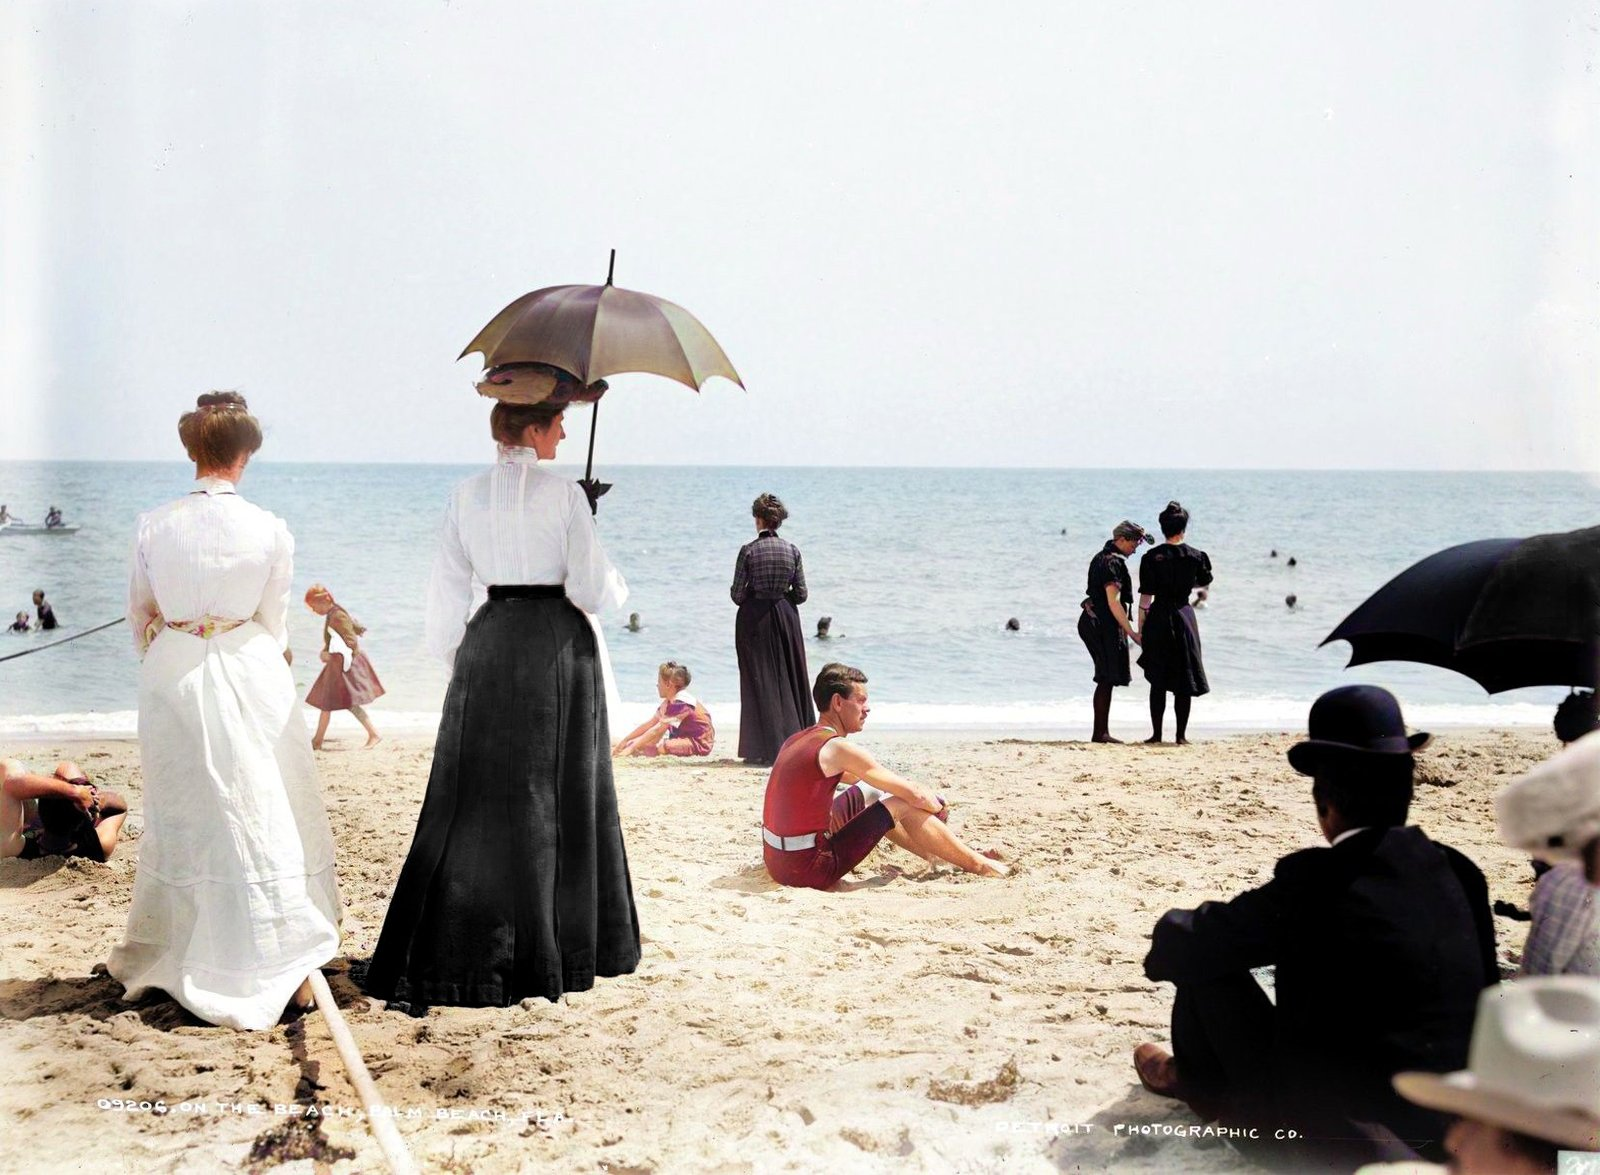 Woman with parasol at Palm Beach, Florida (1900)